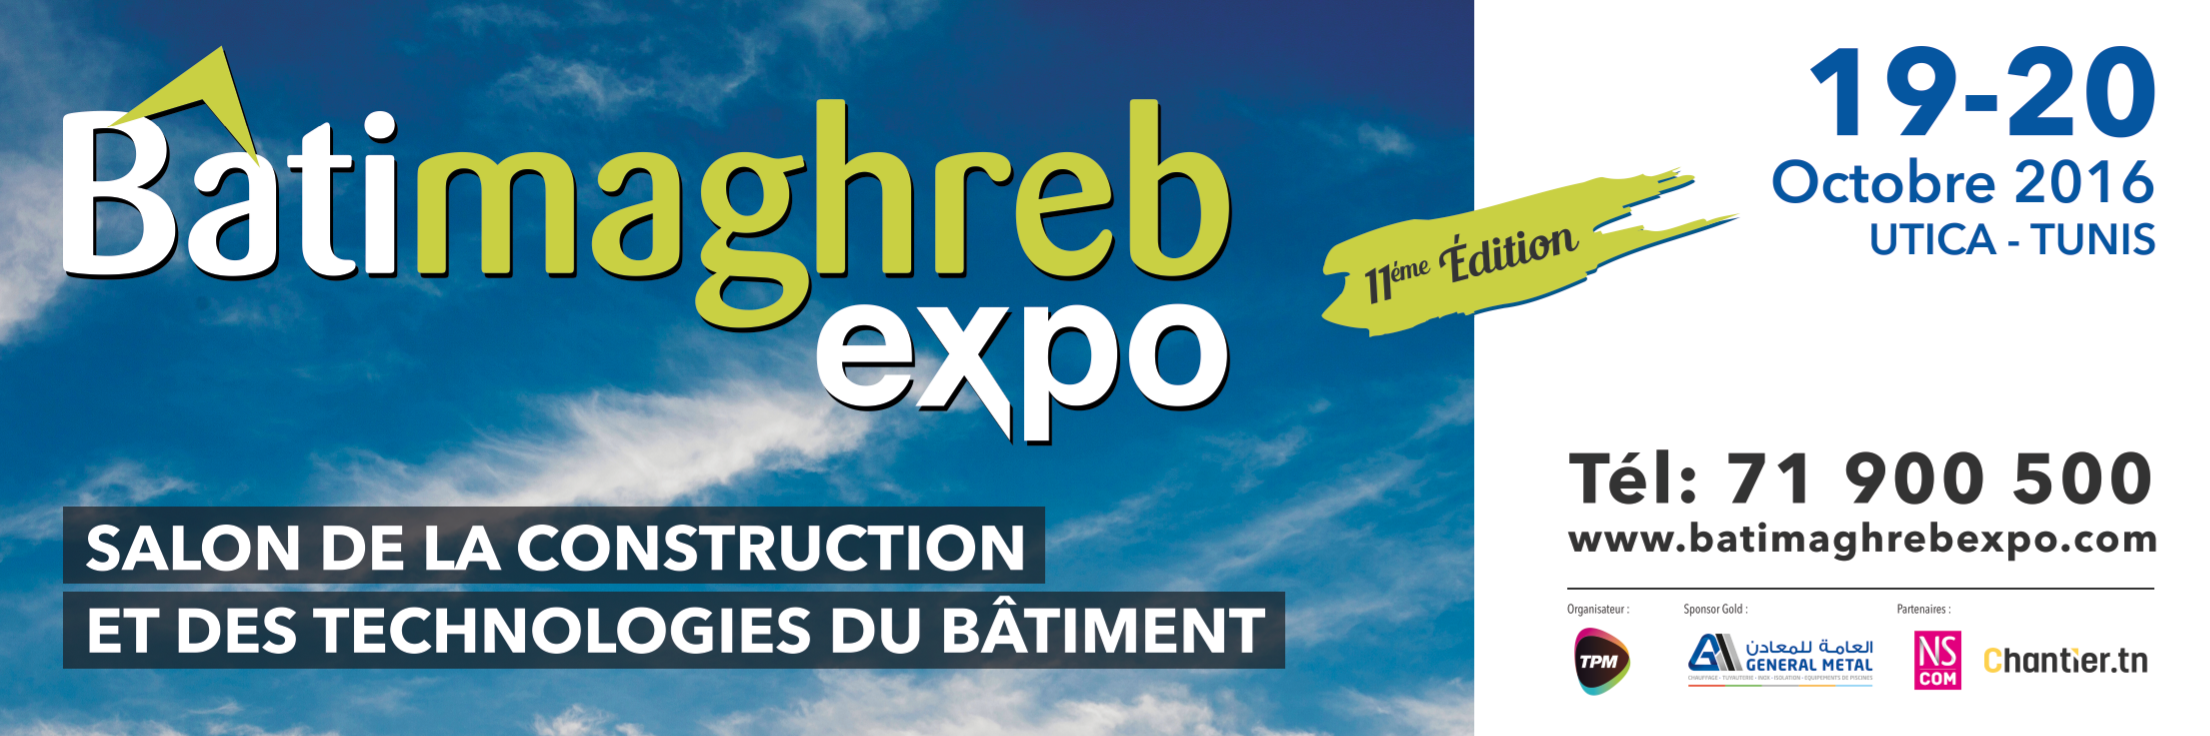 11�me �dition du salon Batimaghreb Expo